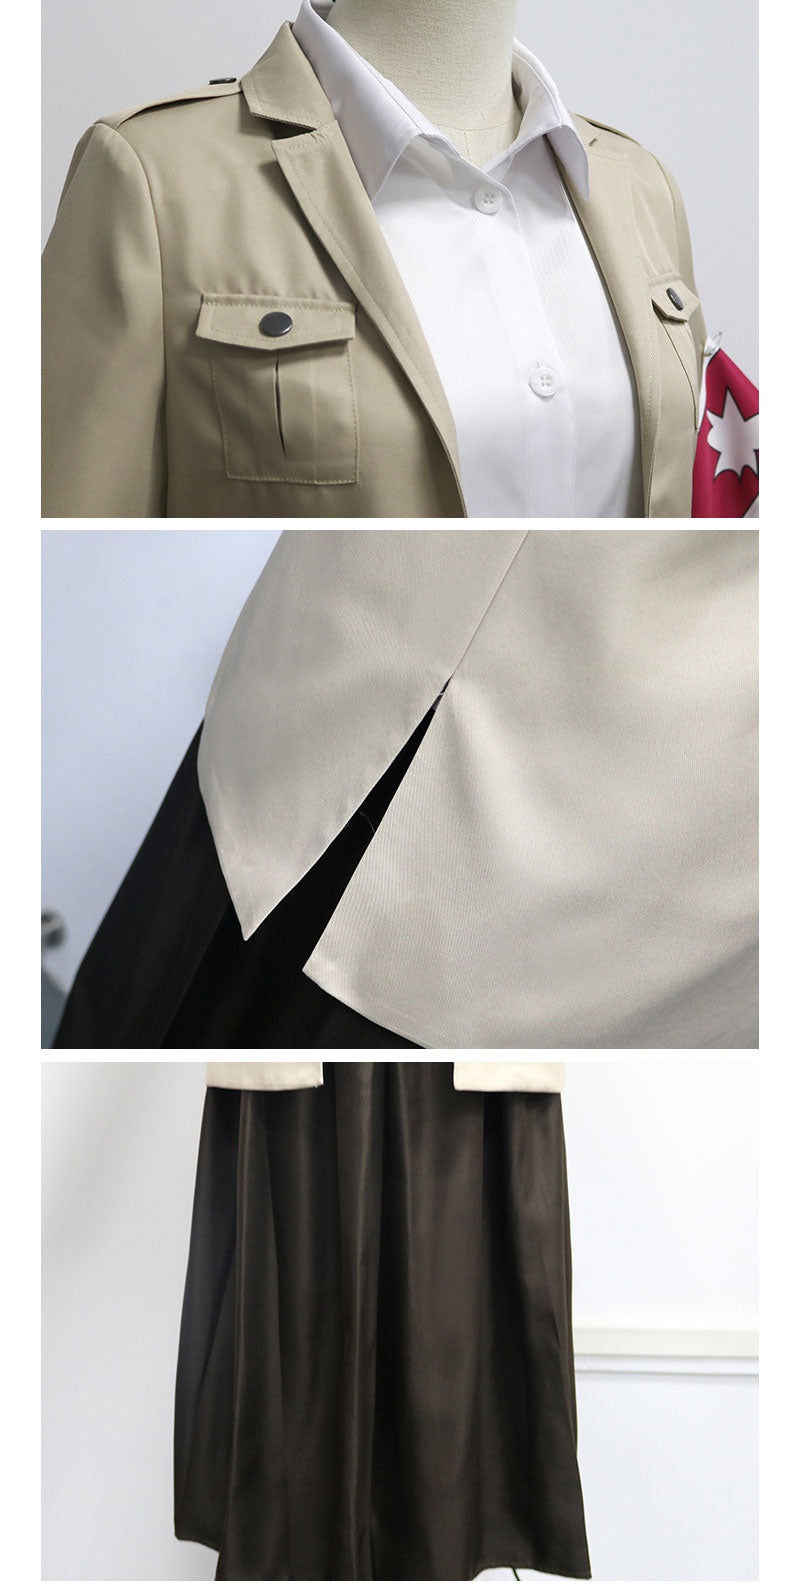 Attack on Titan Warrior Unit Pieck Finger Cosplay Costumes